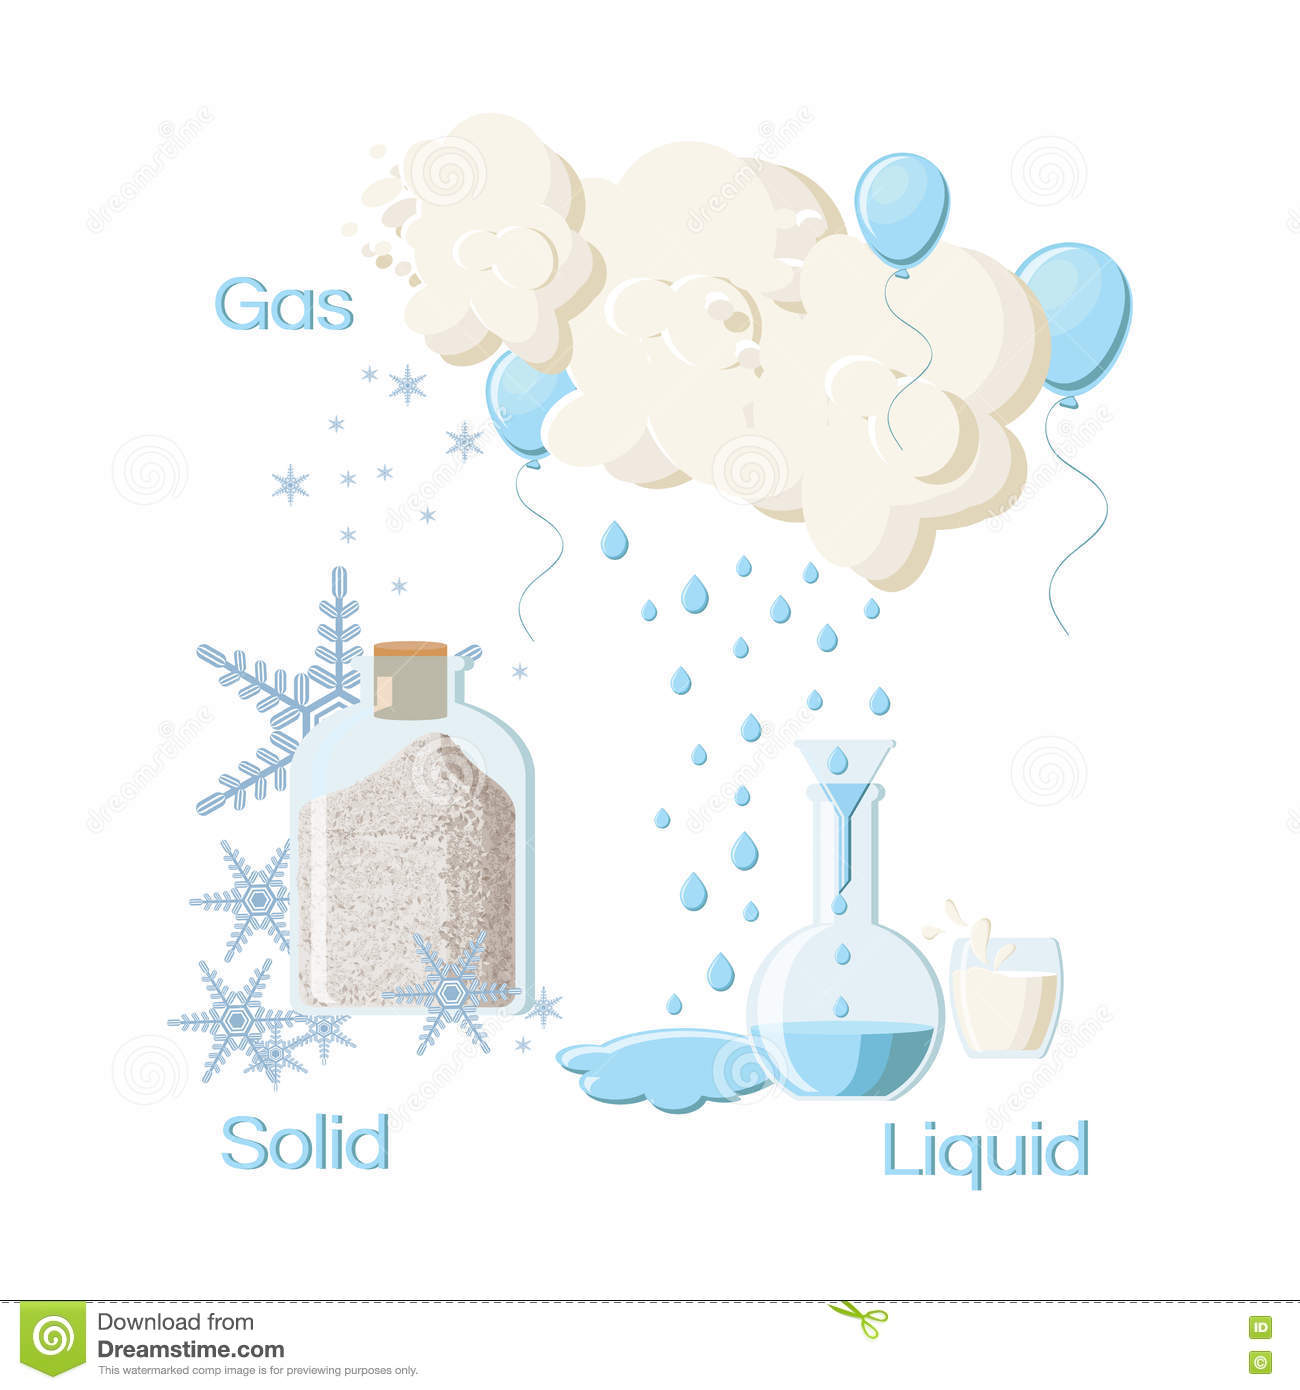 Fundamental States Of Matter Stock Vector